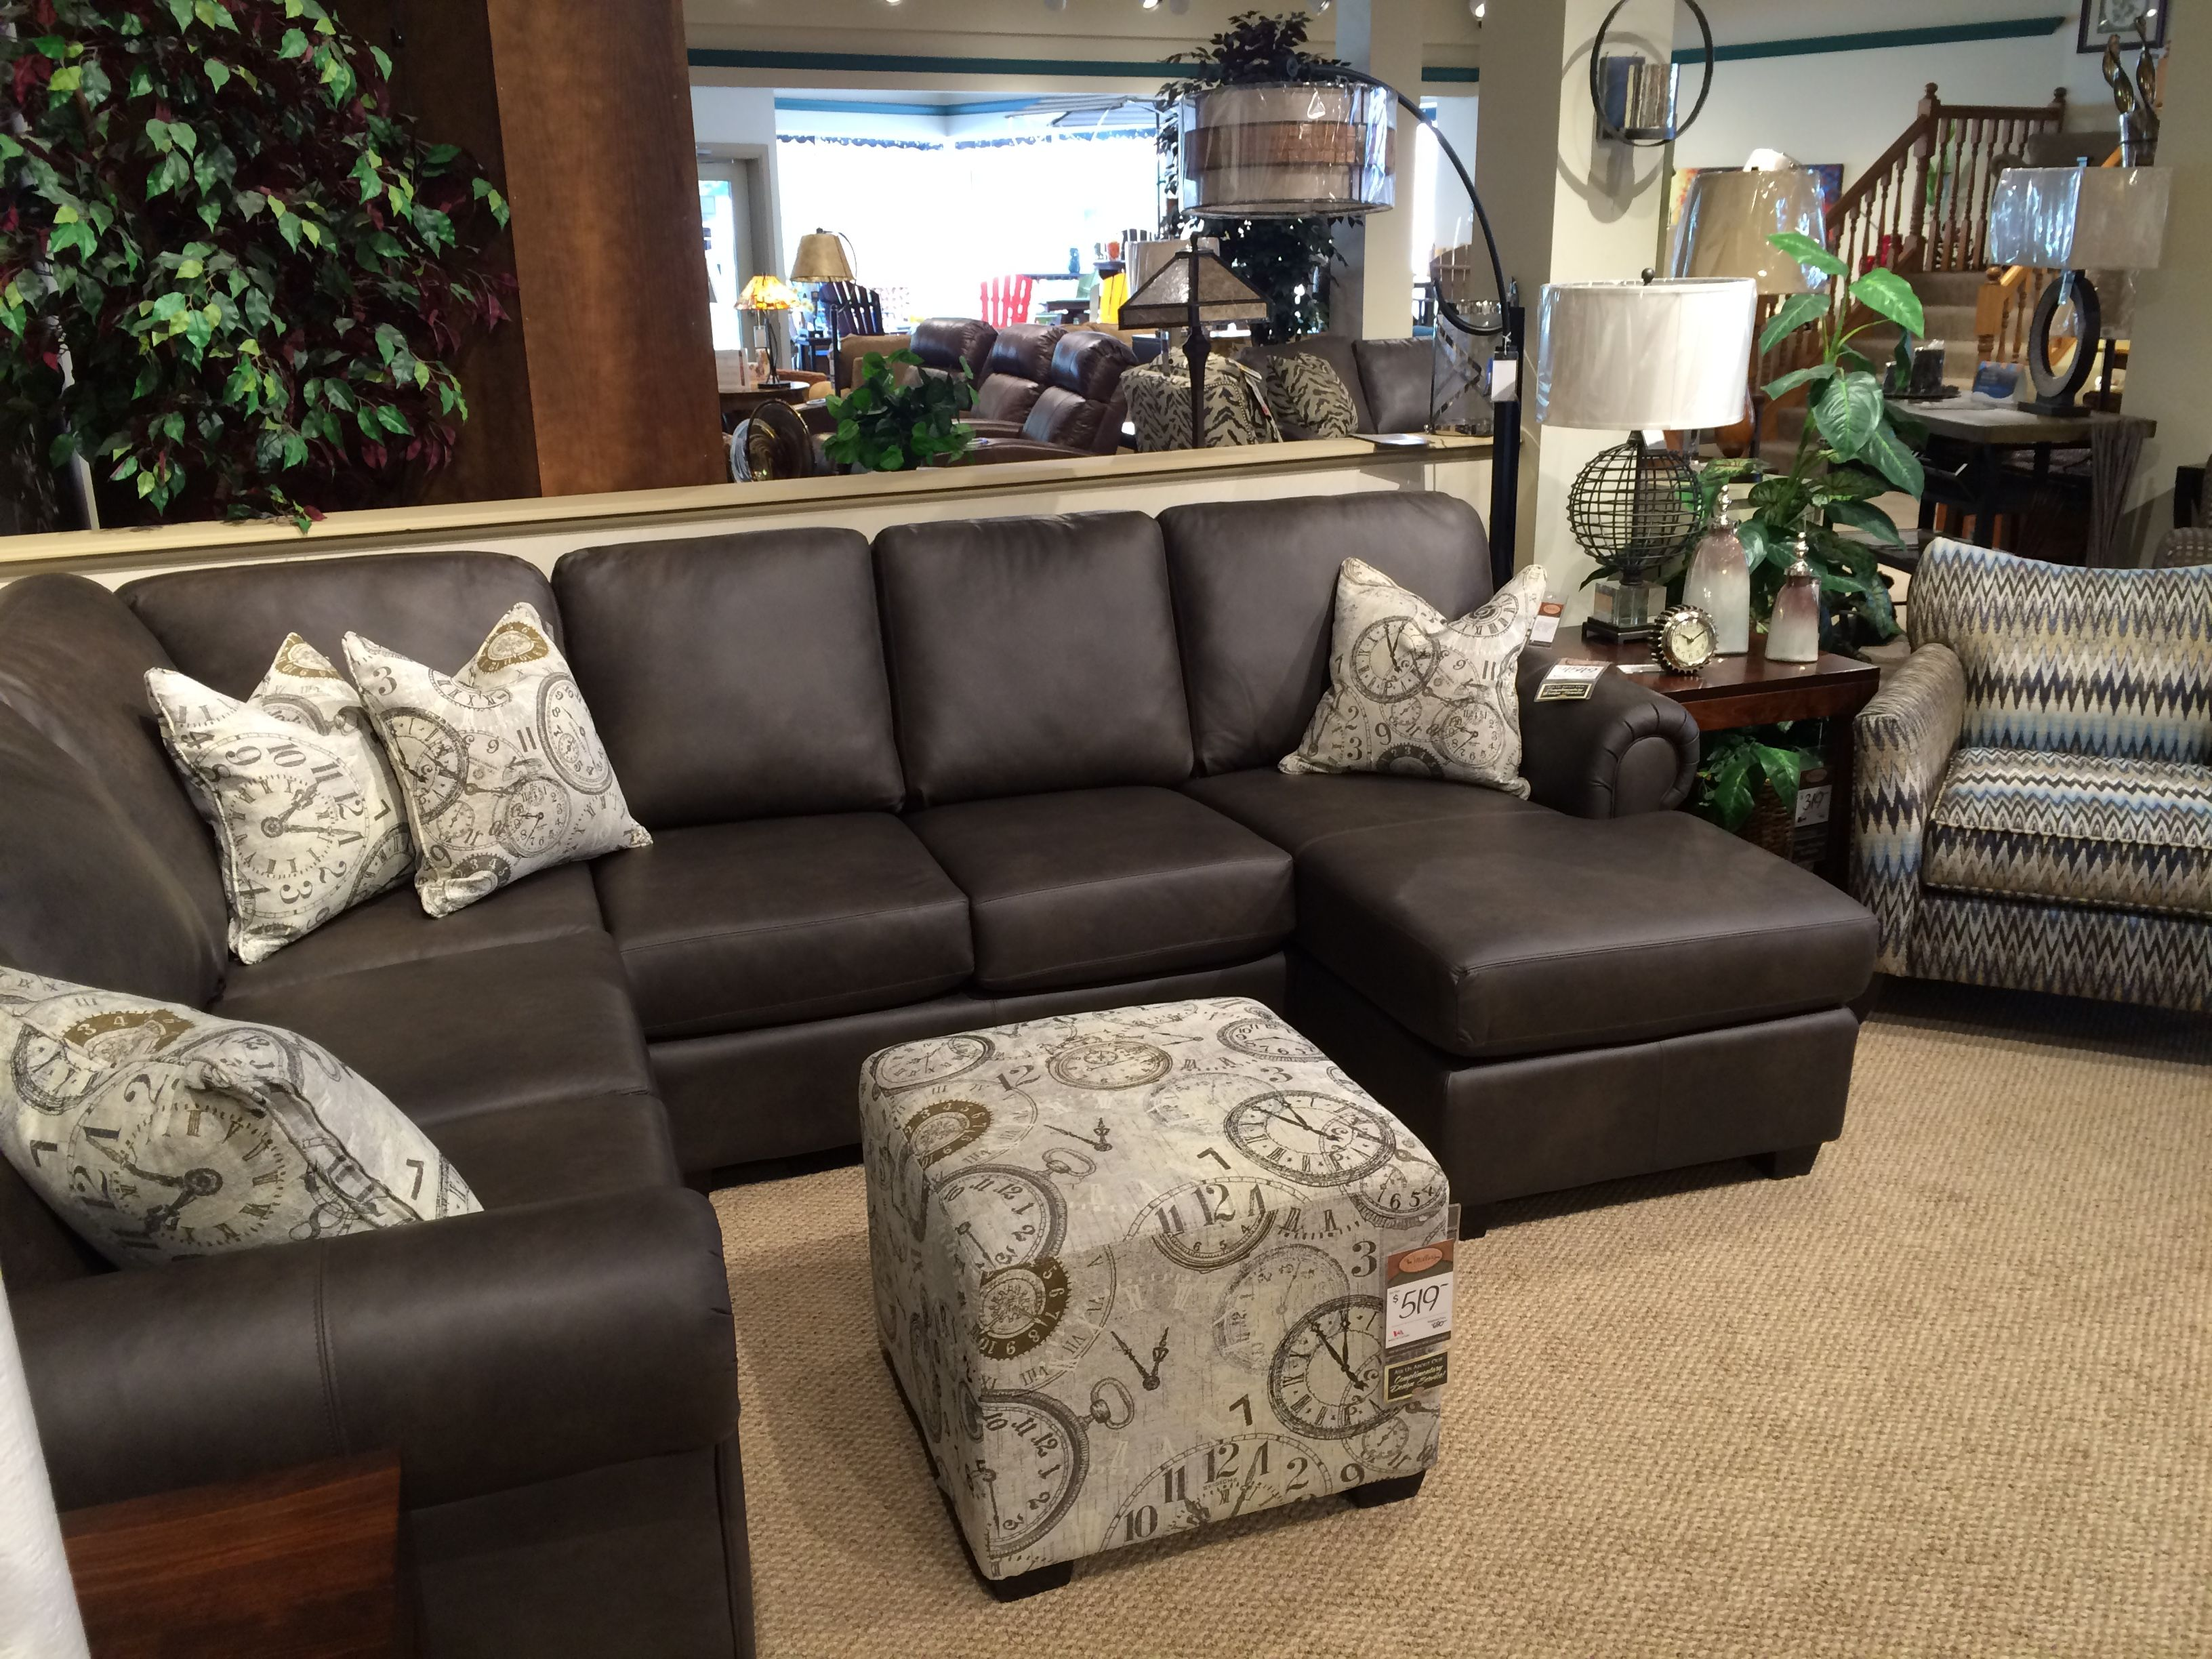 Best Great Modern Rustic Leather Sectional From Décor Rest 640 x 480